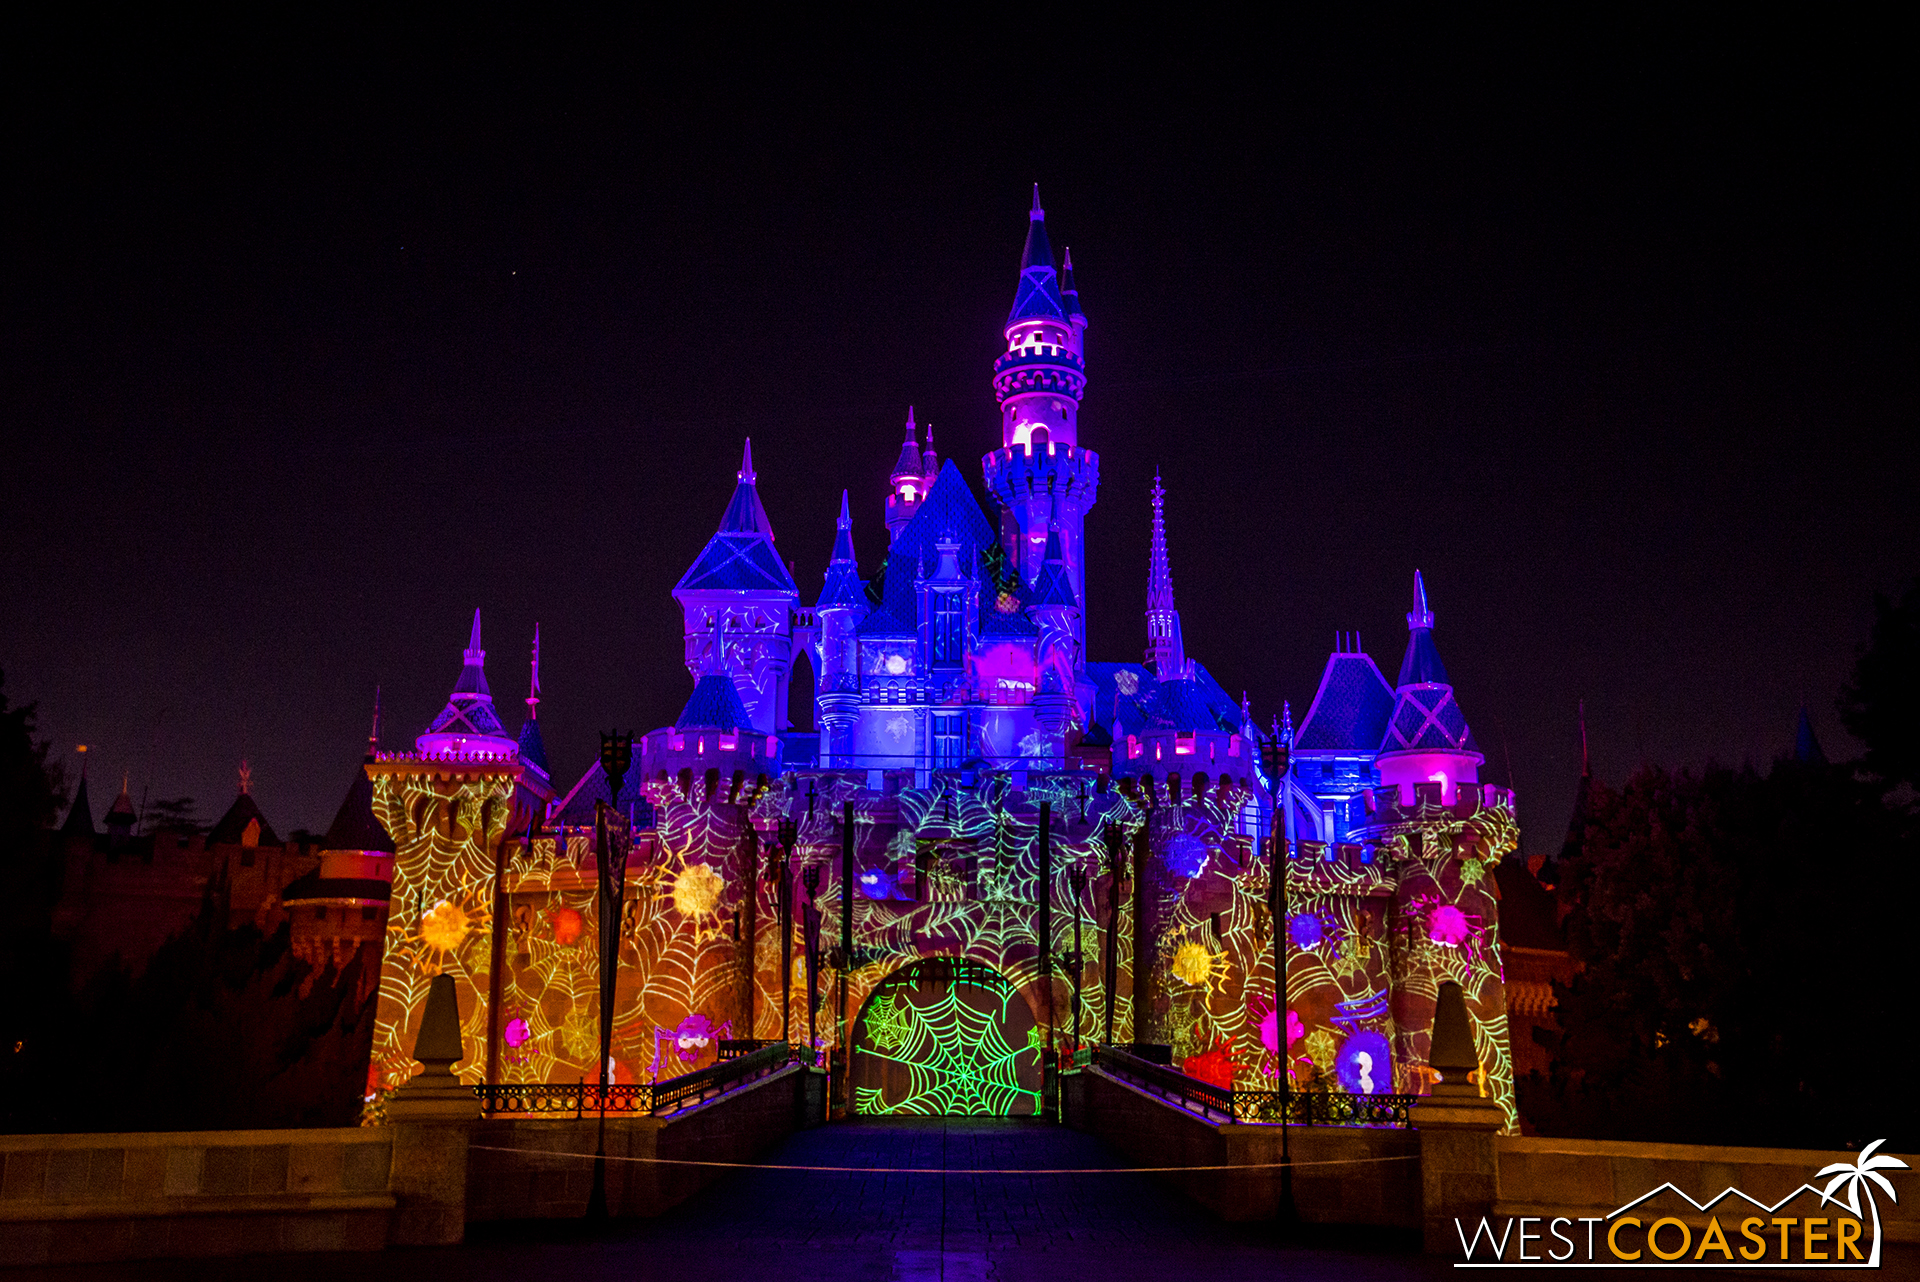 Family fun frights, fantastic shows, trick-or-treating, and less crowded access to rides and attractions await at Mickey's Halloween Party, a separately ticketed event part of HalloweenTime at the Disneyland Resort.